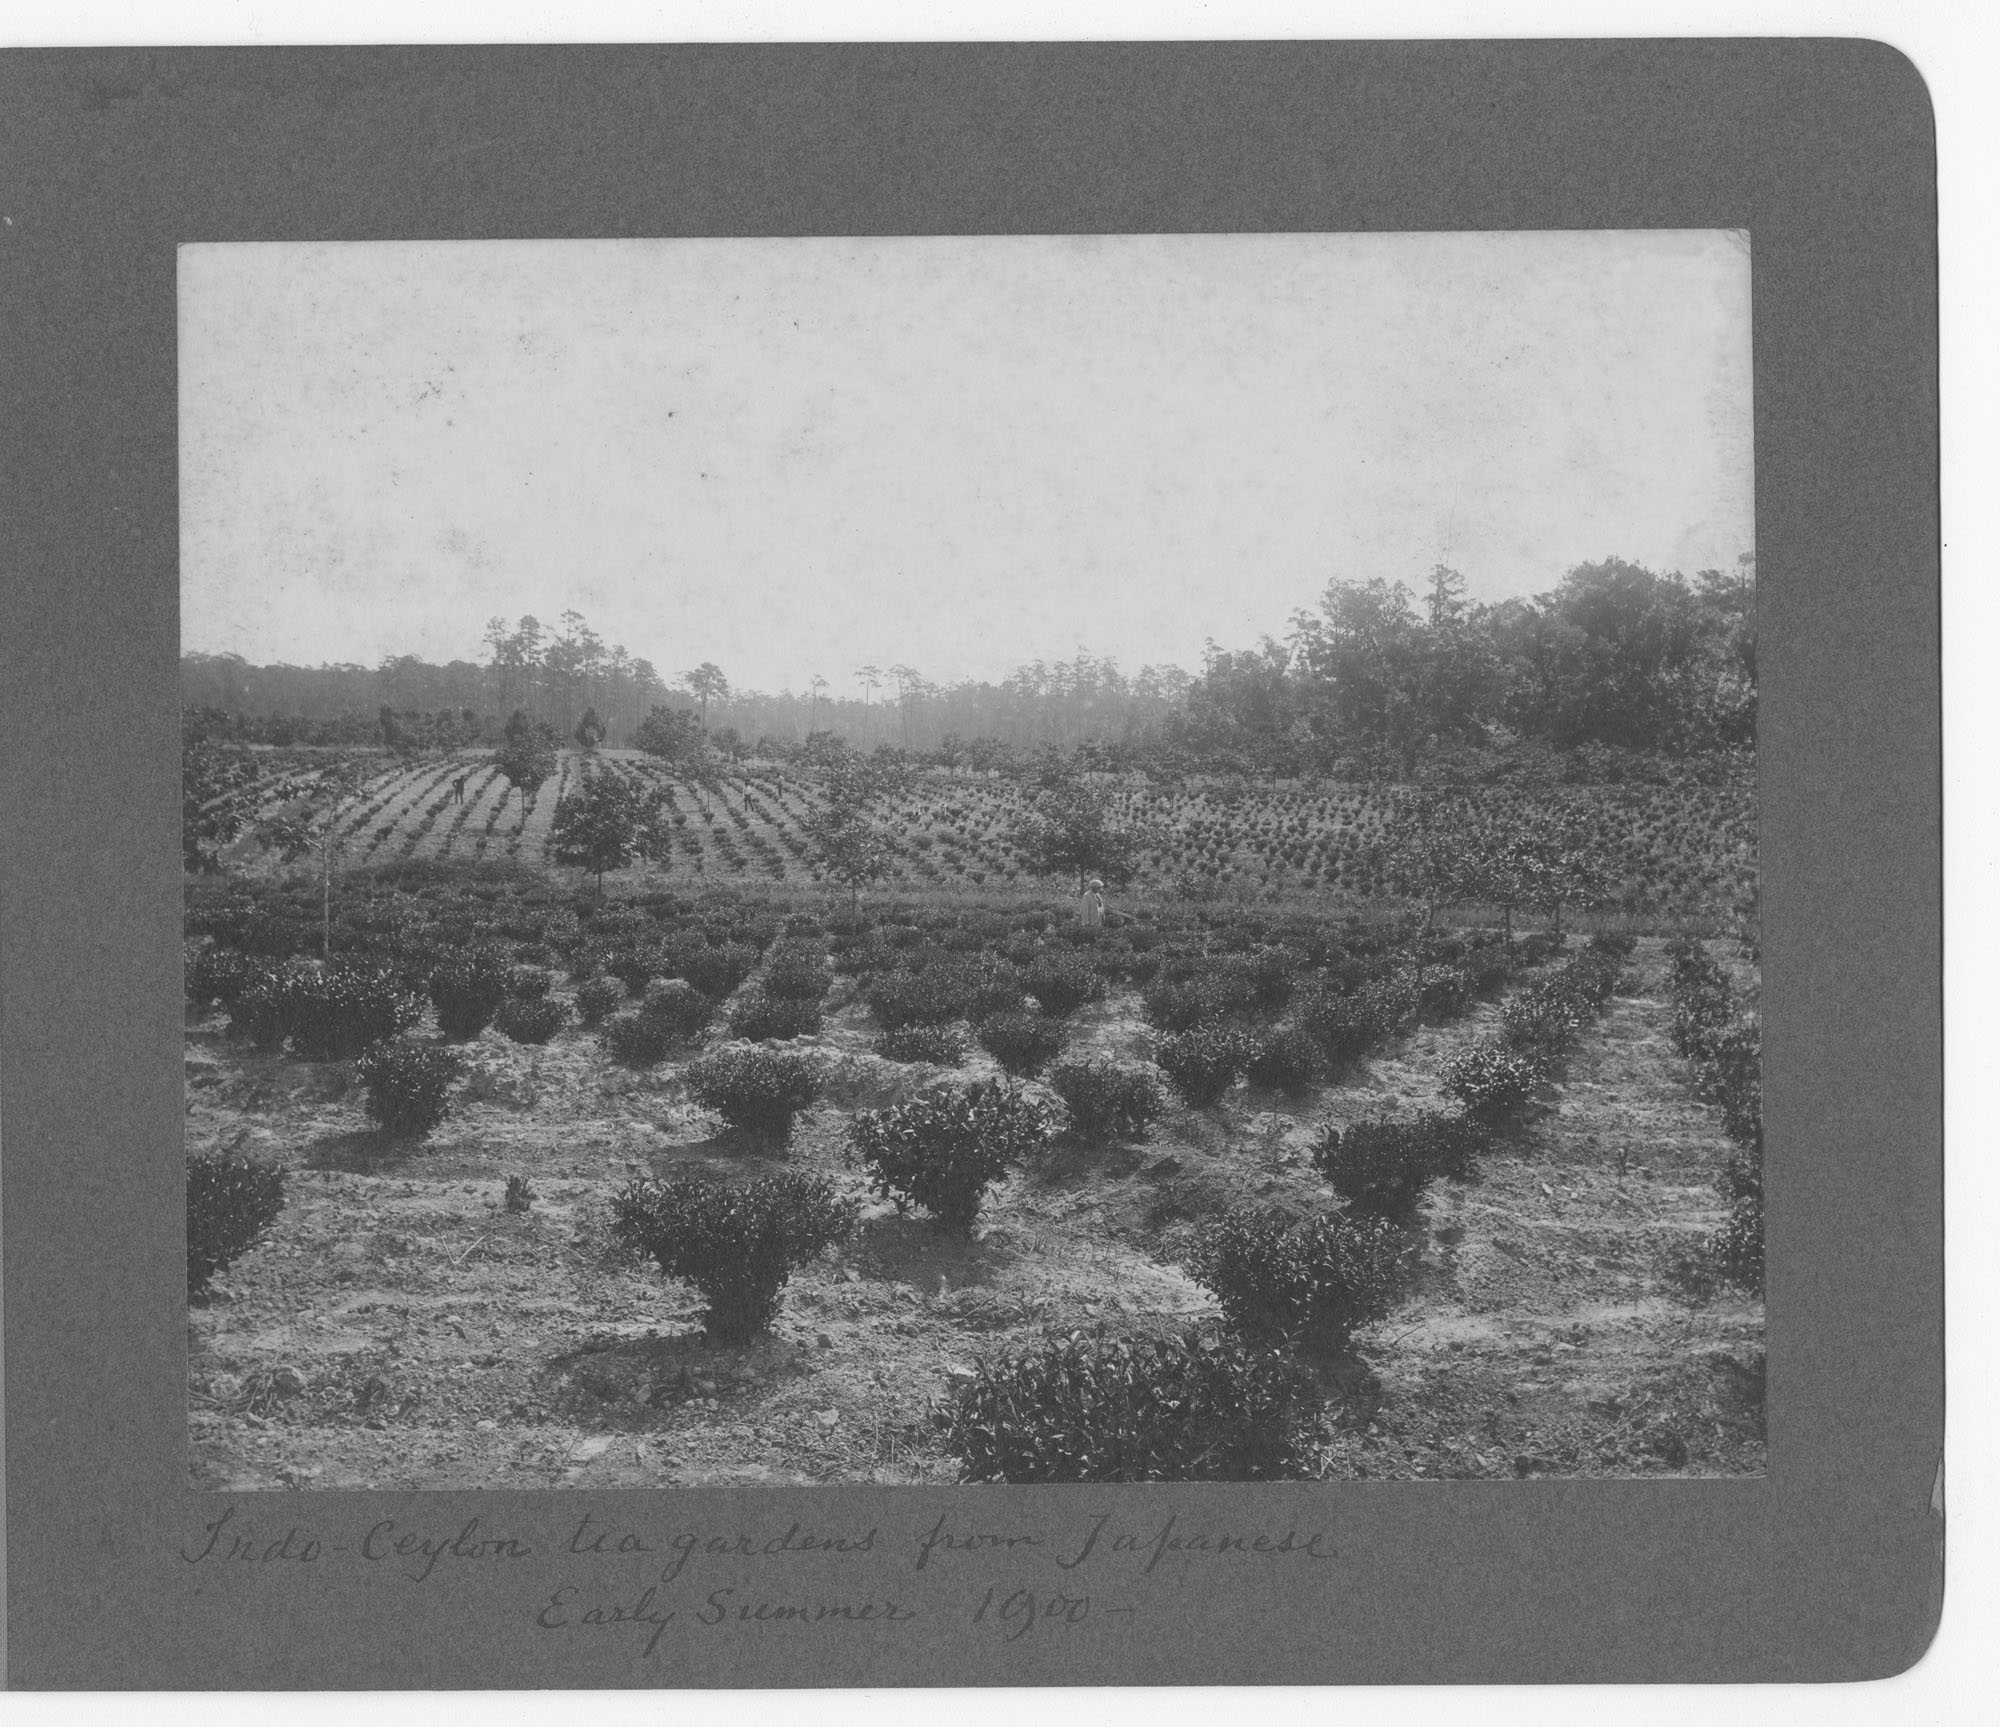 Pinehurst Tea Plantation Photograph Album, page 40